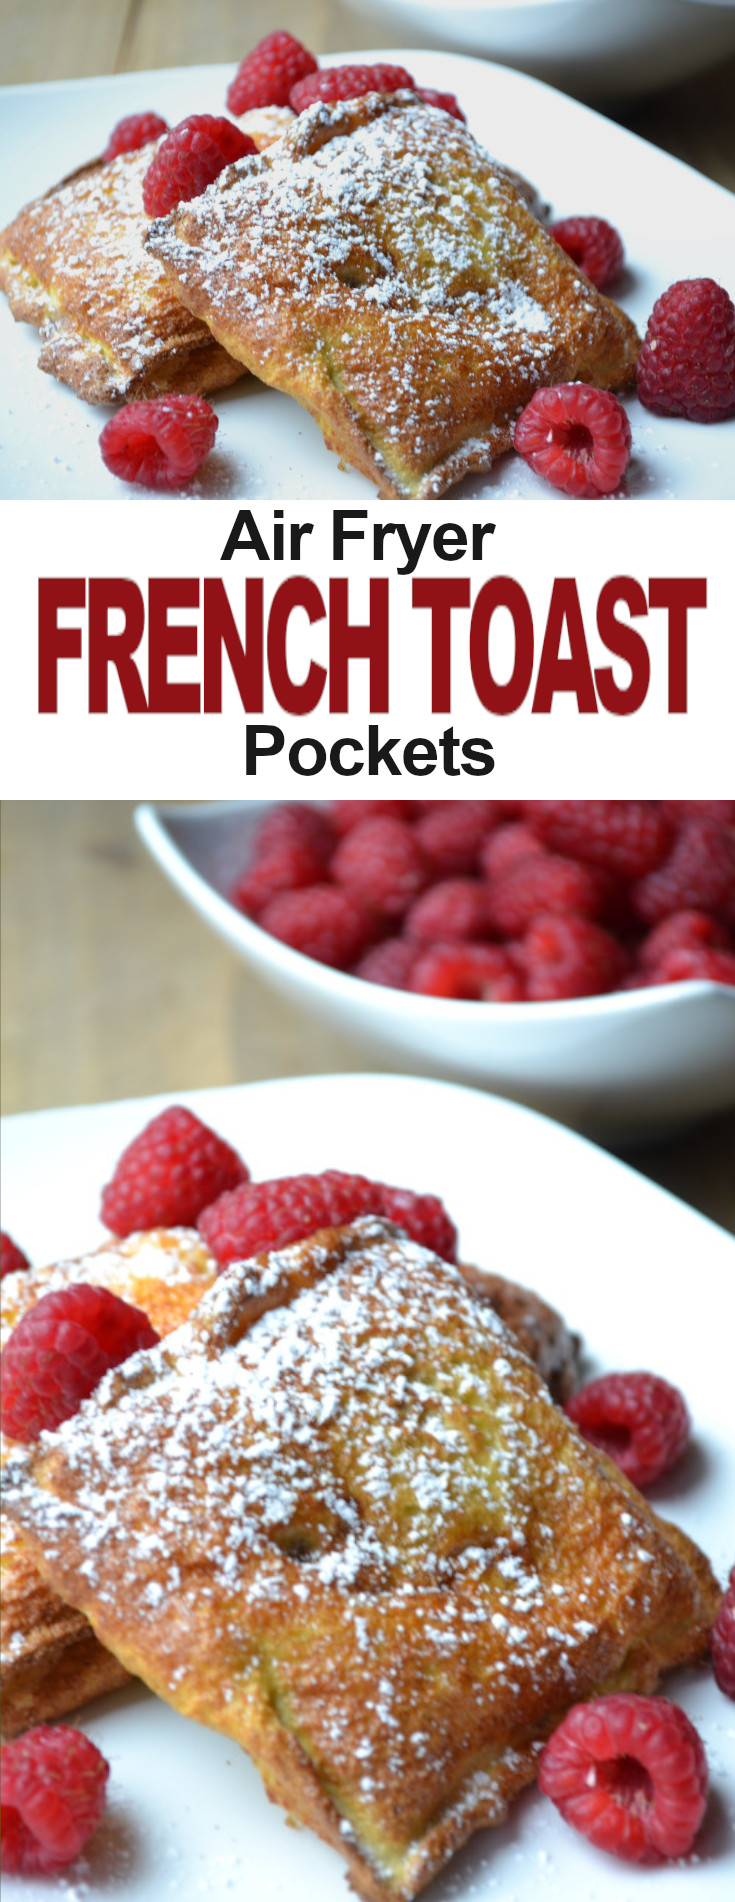 French Toast Pockets Recipe- healthy, crispy, air fryer, toasted pockets filled with a variety of delicious fillings.